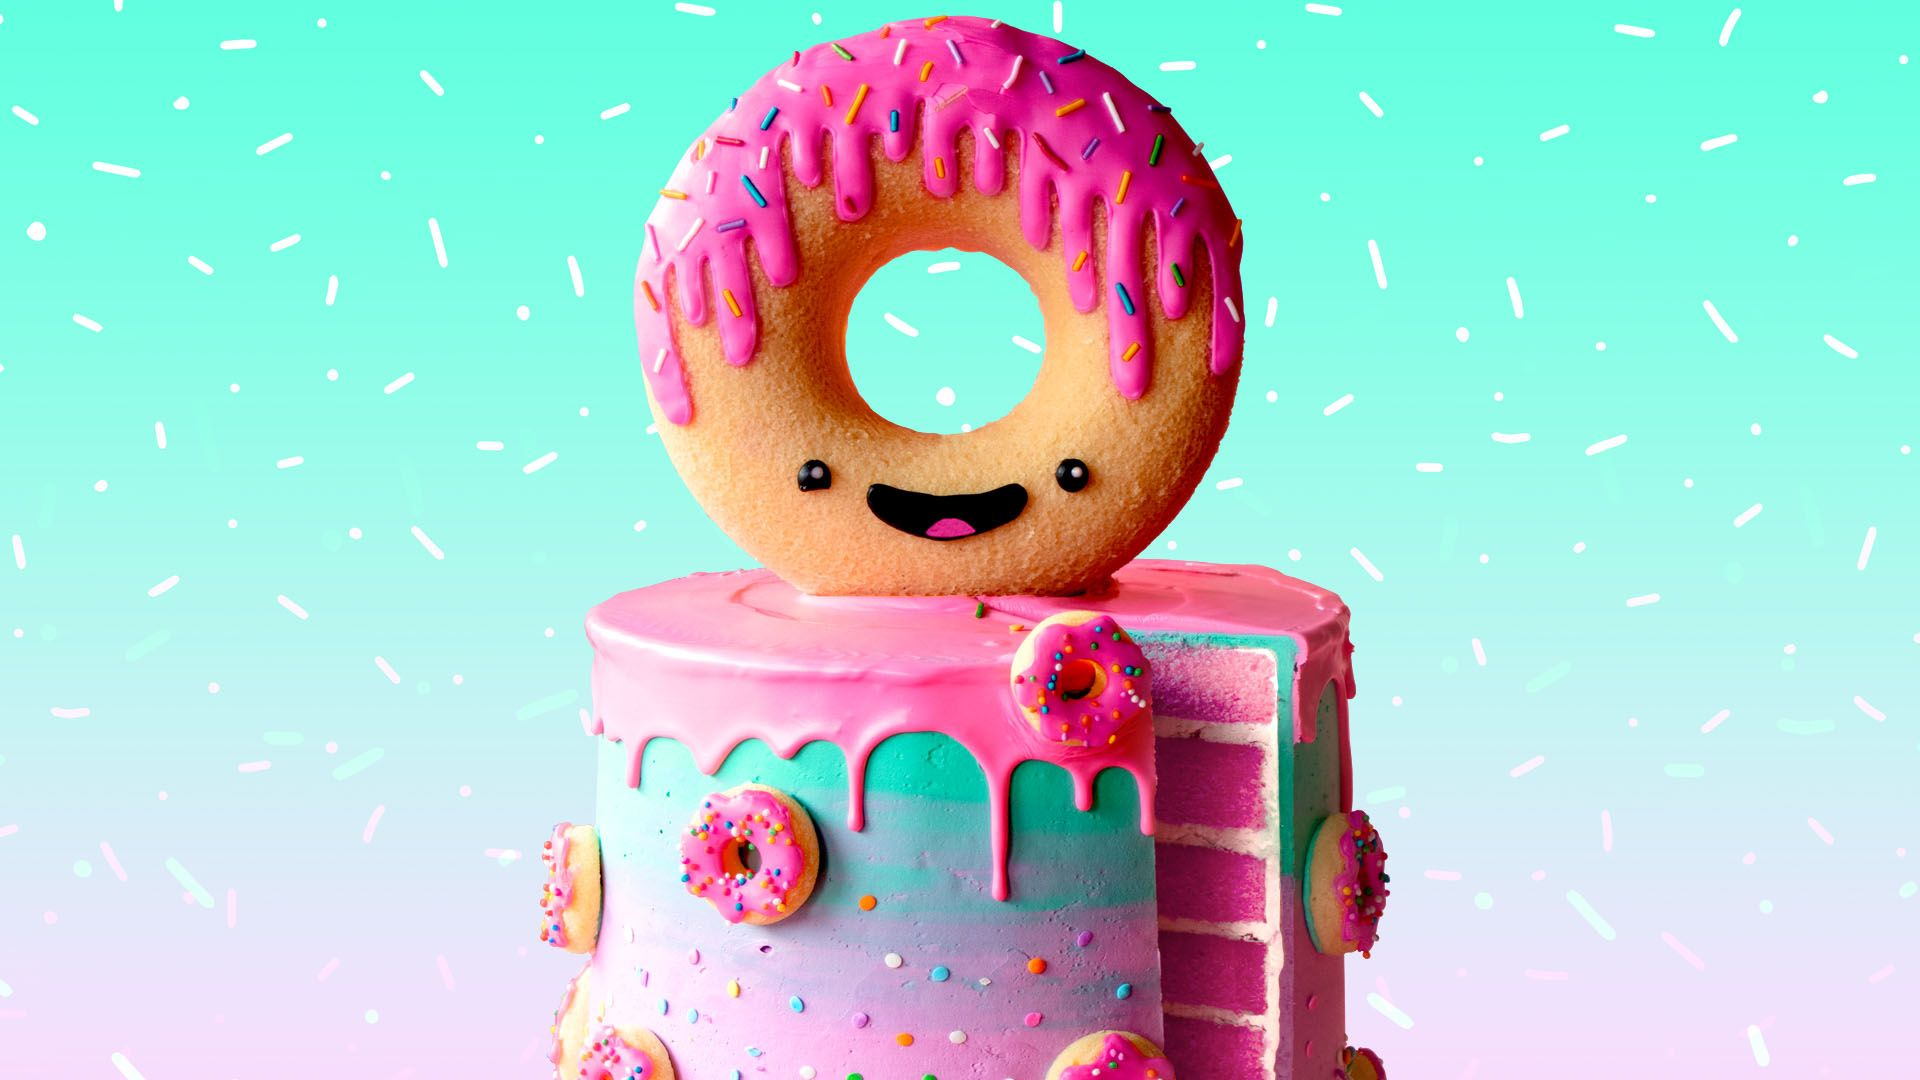 pictures of donut cakes